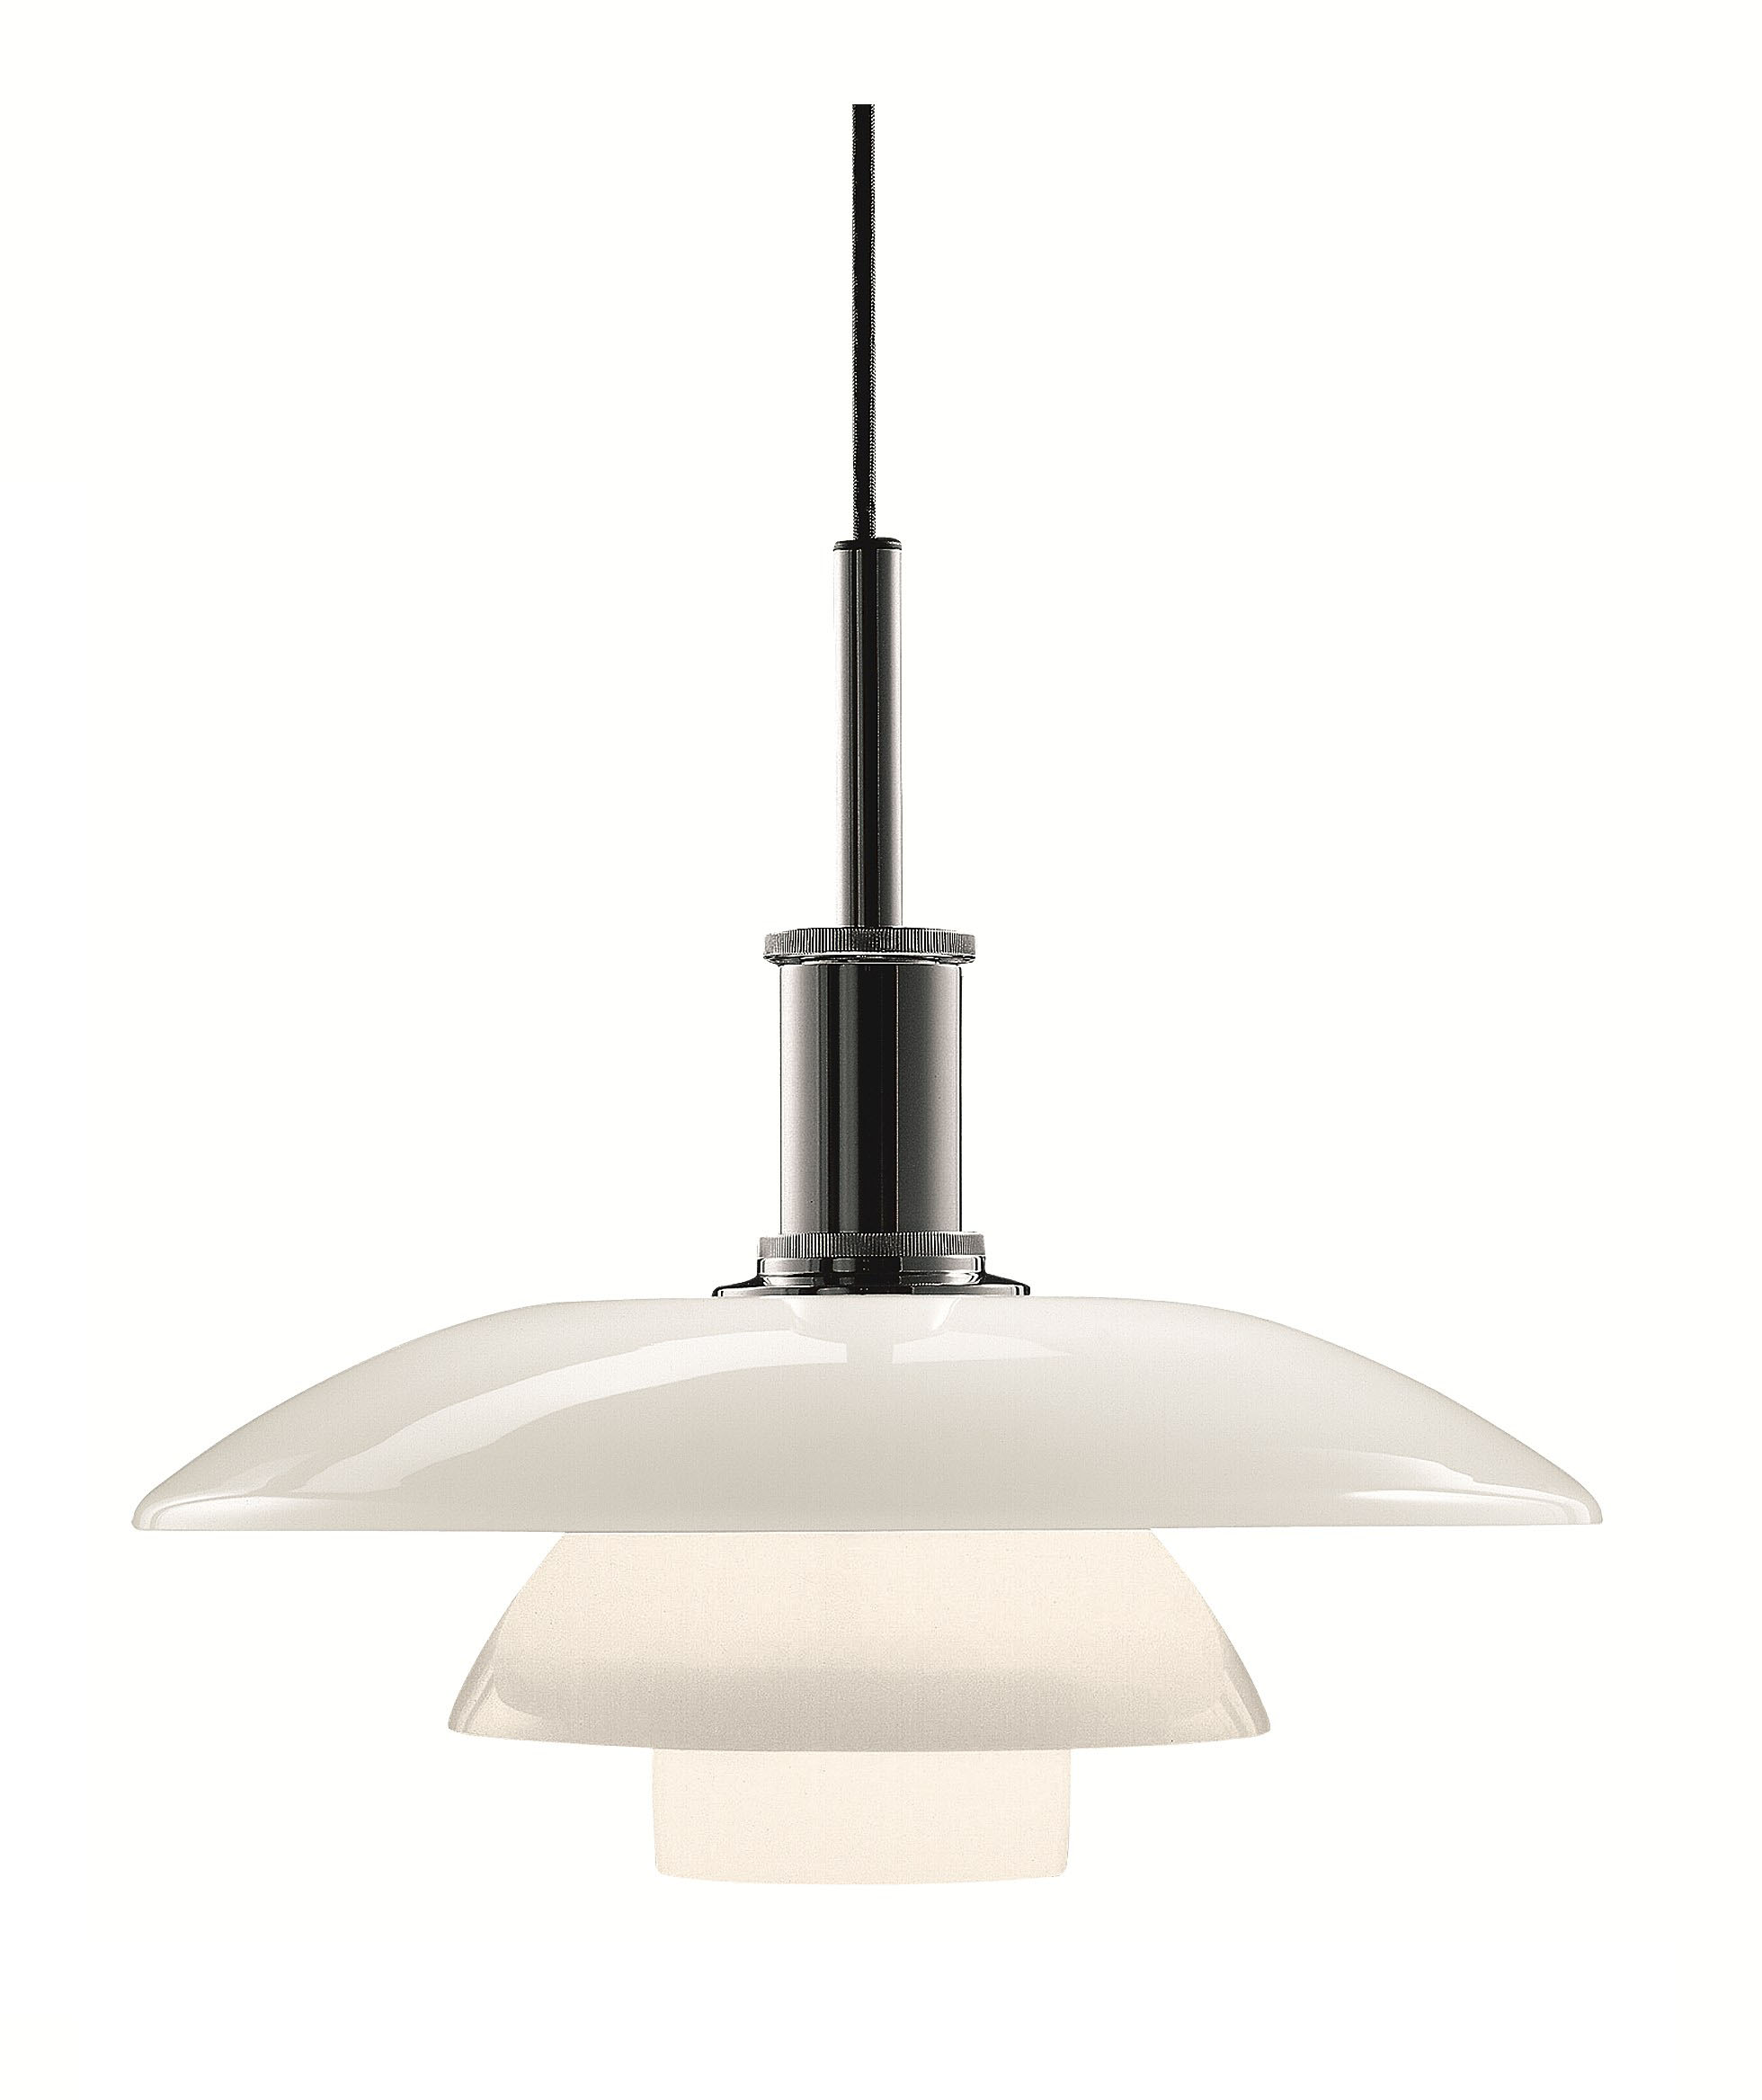 Pendant lights products lightsource sirocco ltd in trinidad our products in pendant lights arubaitofo Gallery